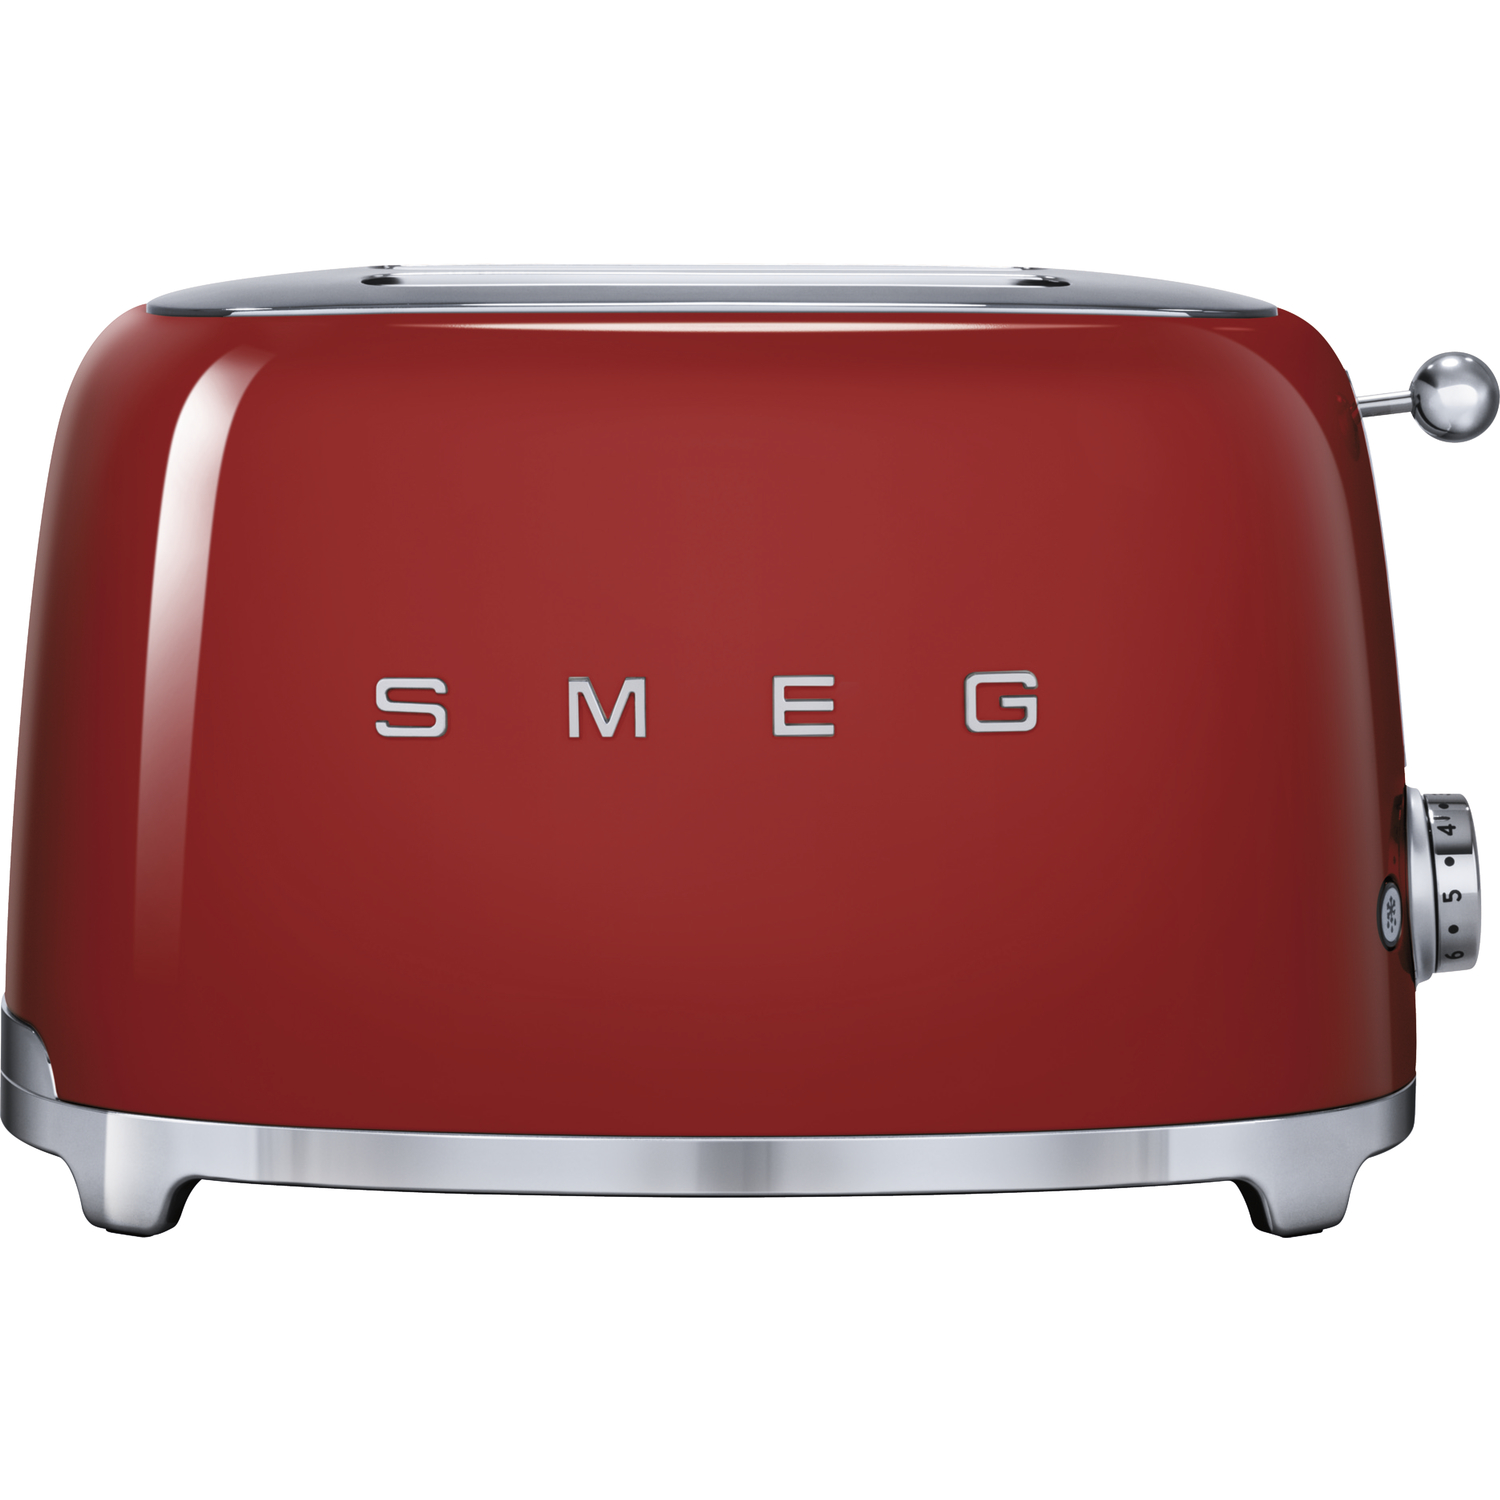 smeg 2 scheiben toaster tsf01rdeu rot. Black Bedroom Furniture Sets. Home Design Ideas